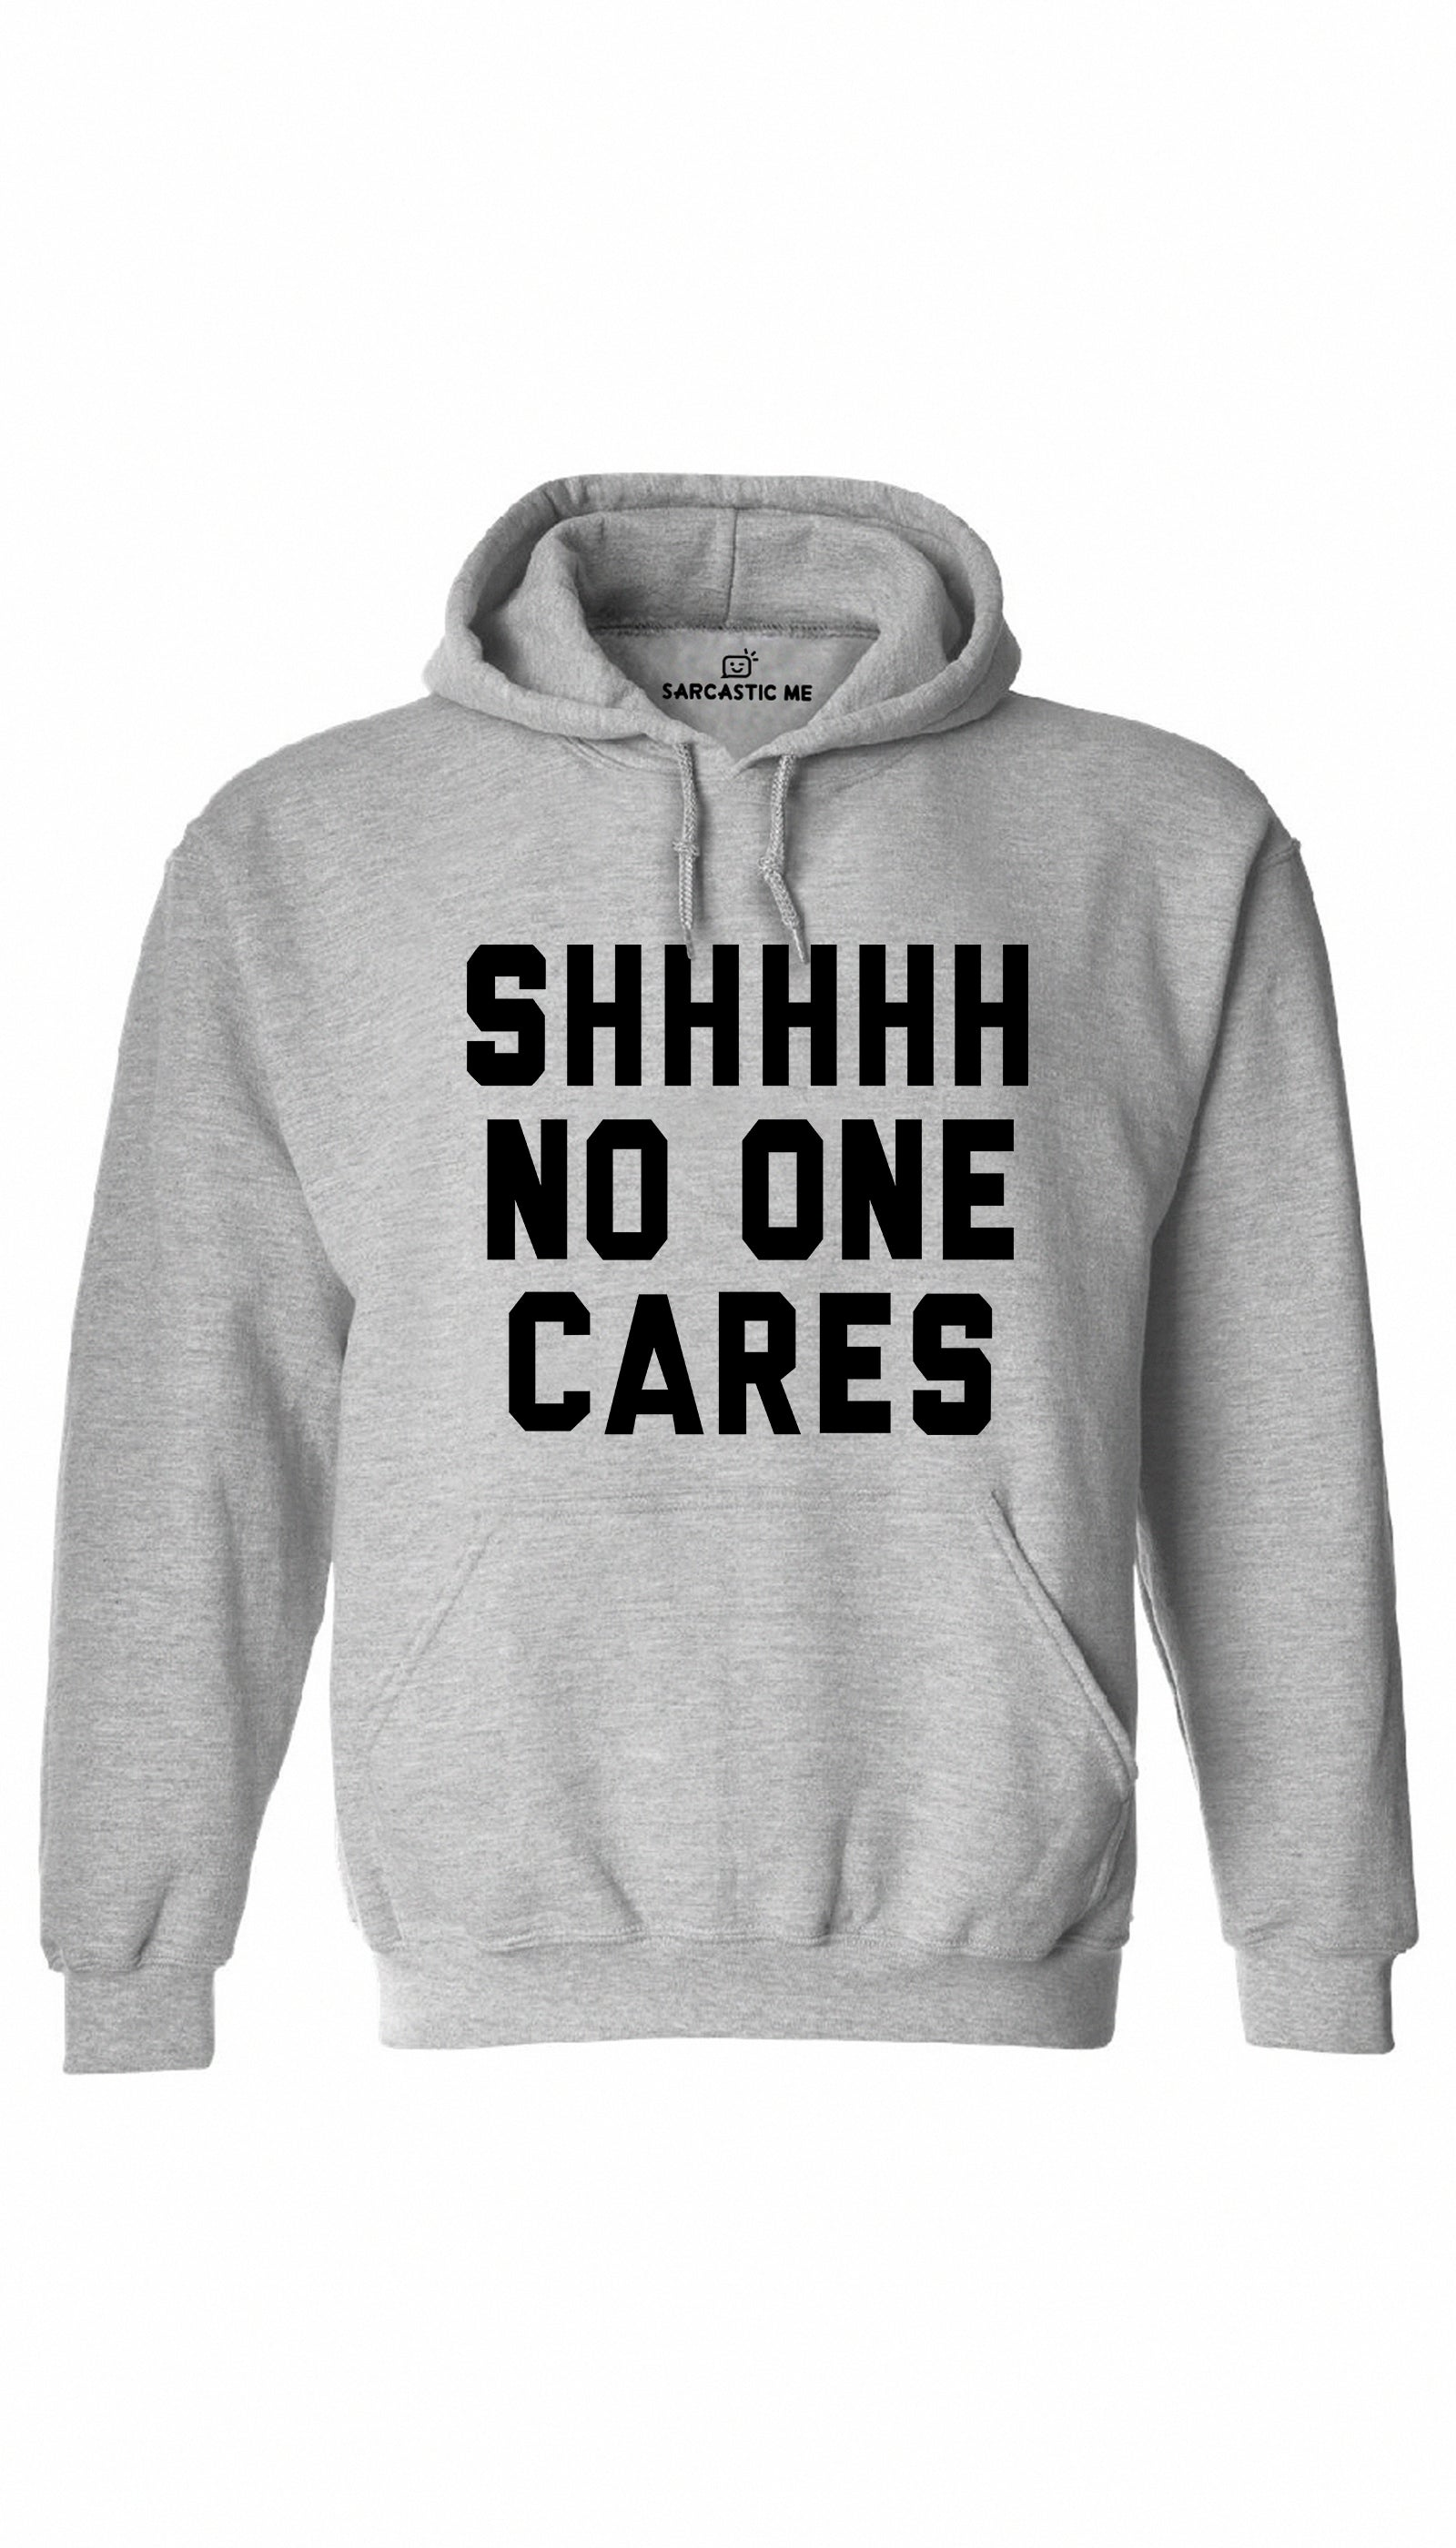 Shhhh No One Cares Gray Hoodie | Sarcastic ME